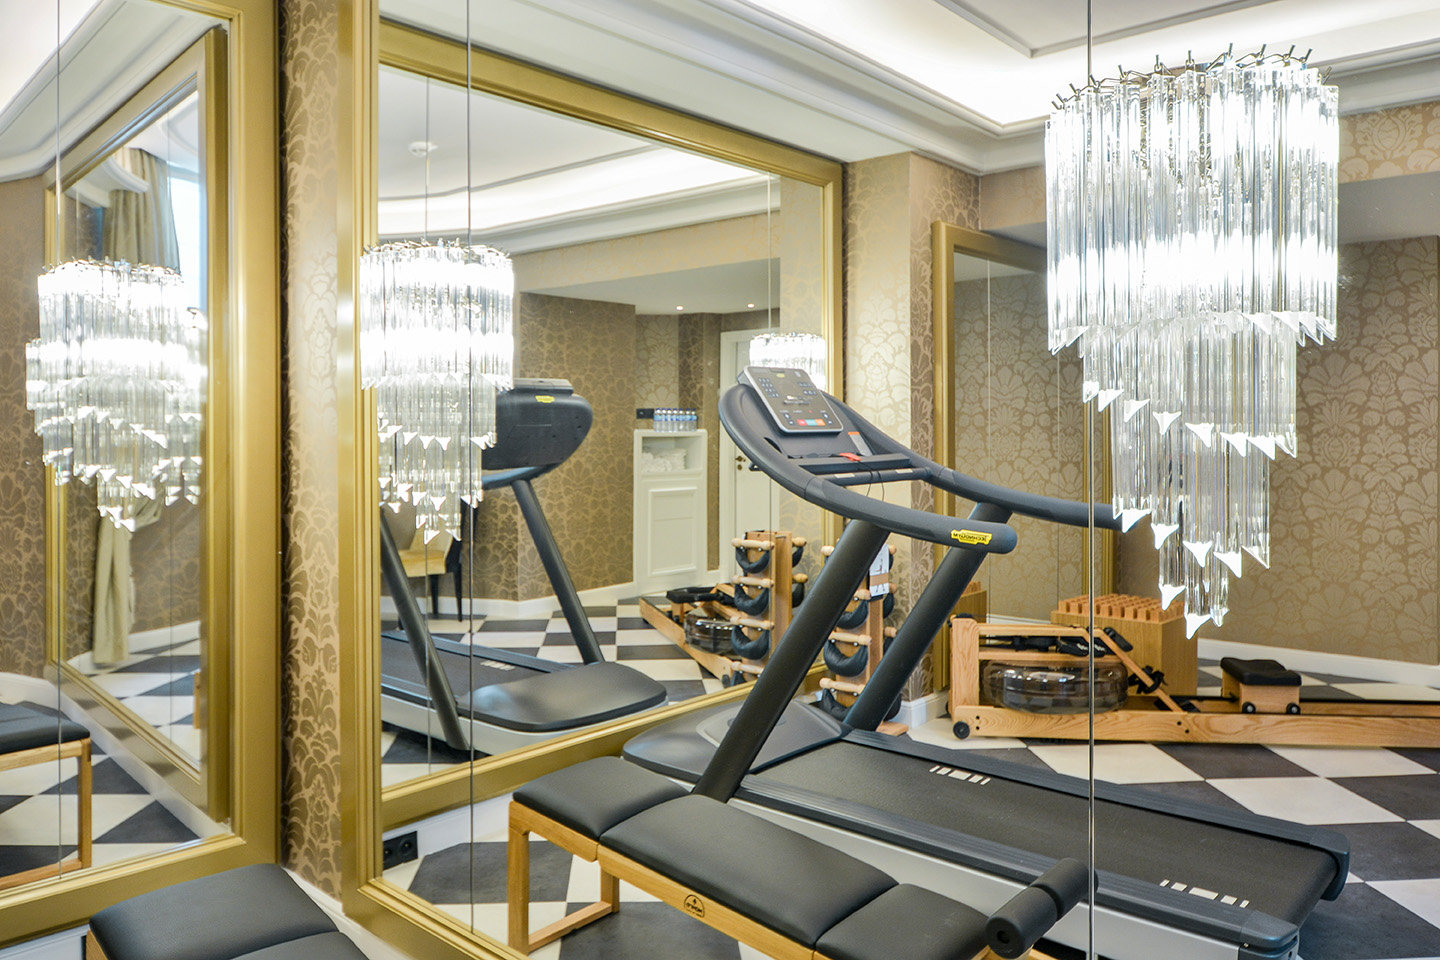 Maison_Astor_Paris_gym